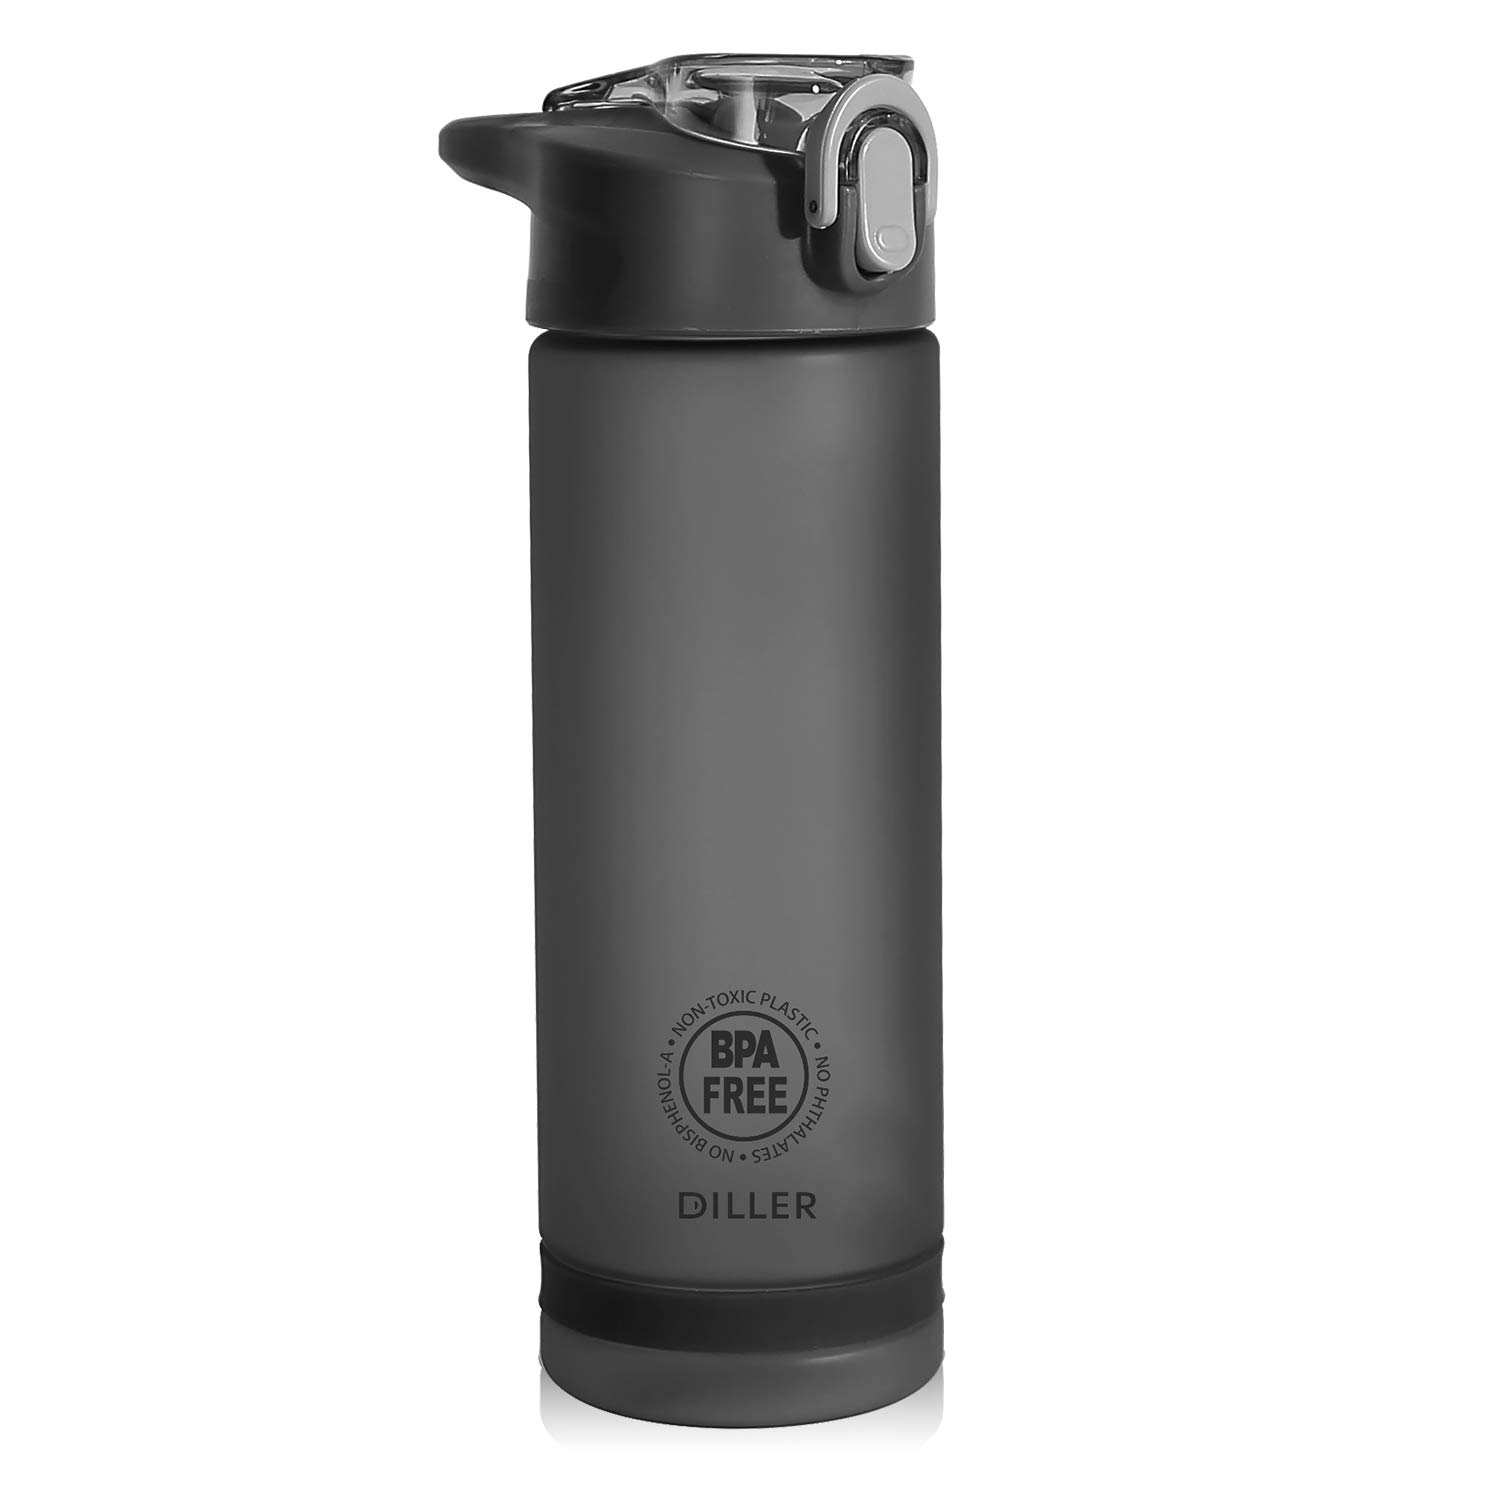 335cf855633 Amazon.com : Diller Water Bottle with Straw, Tritan Plastic BPA-Free Sport  Water Bottle with Flip-Flop Lid, 25 Oz (Black) : Sports & Outdoors